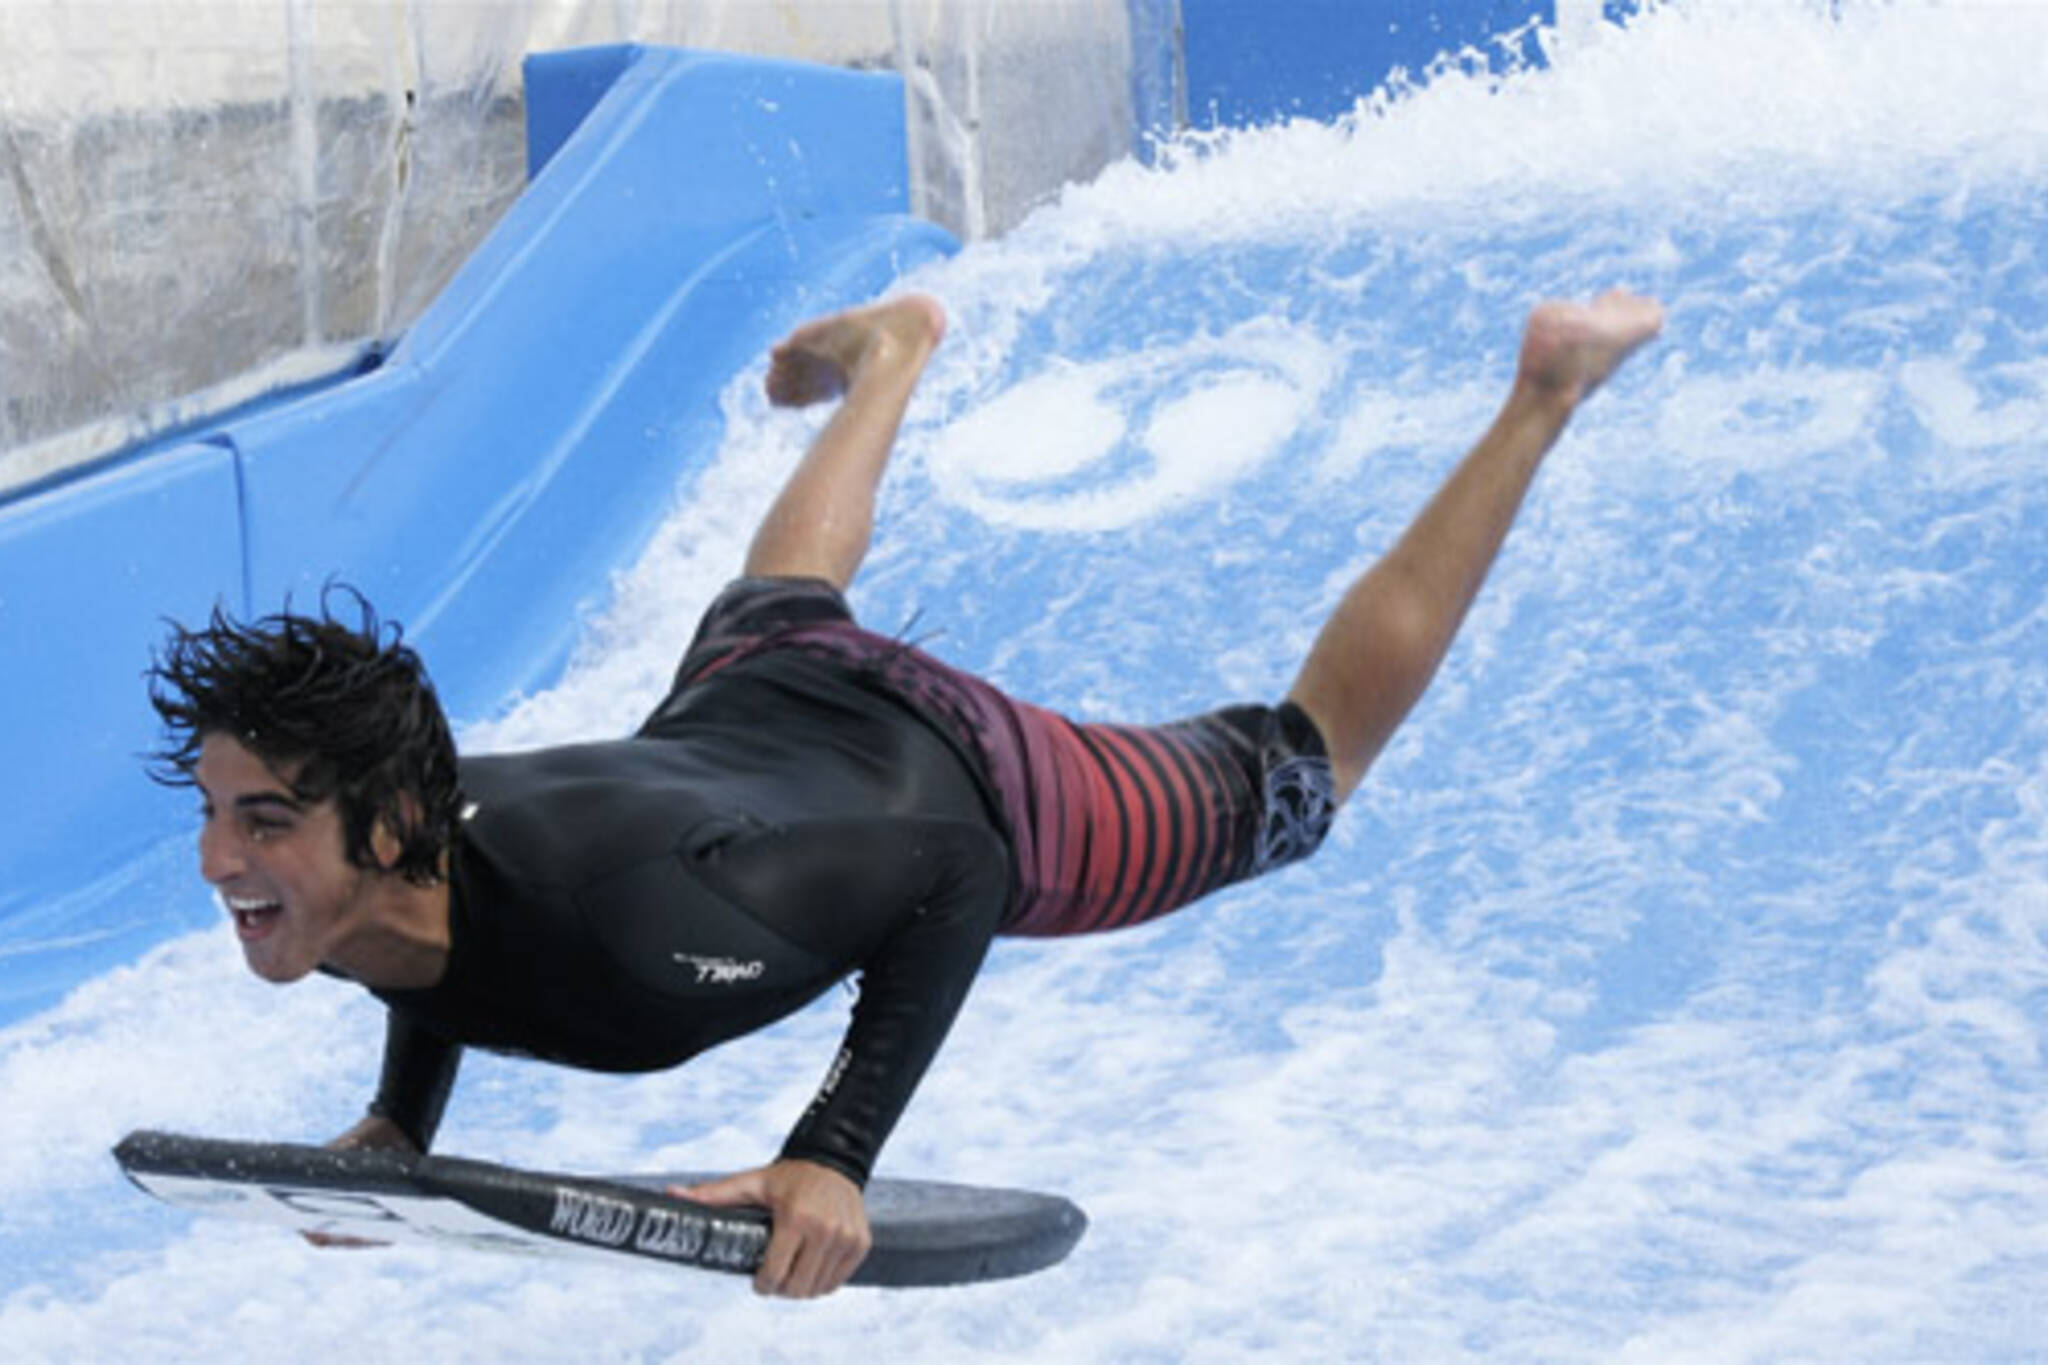 Flowrider demo at the CNE